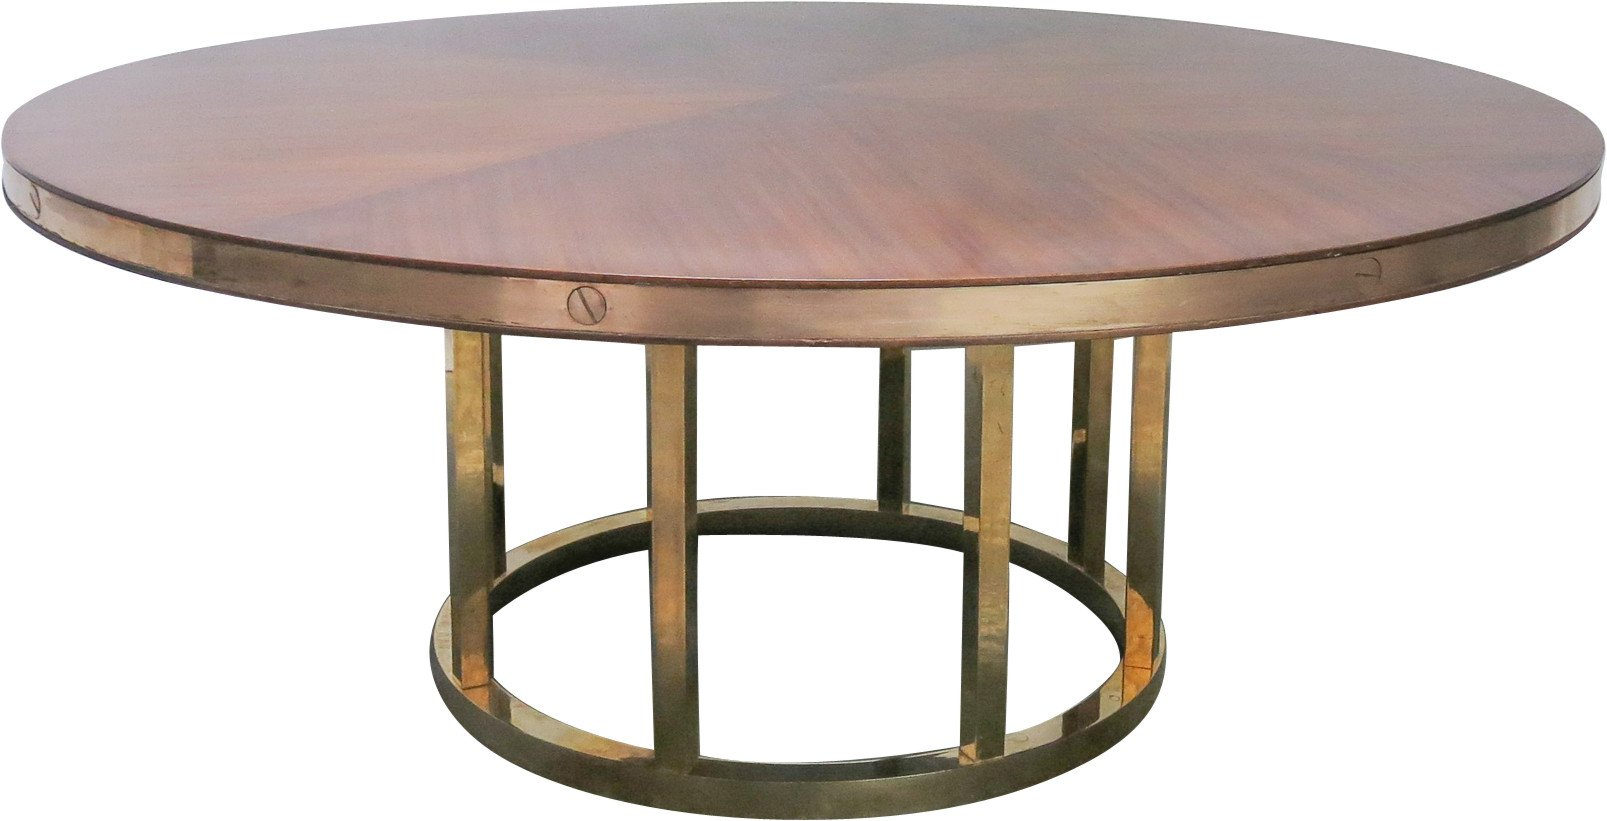 Round Dining Table, Italy, 1970s